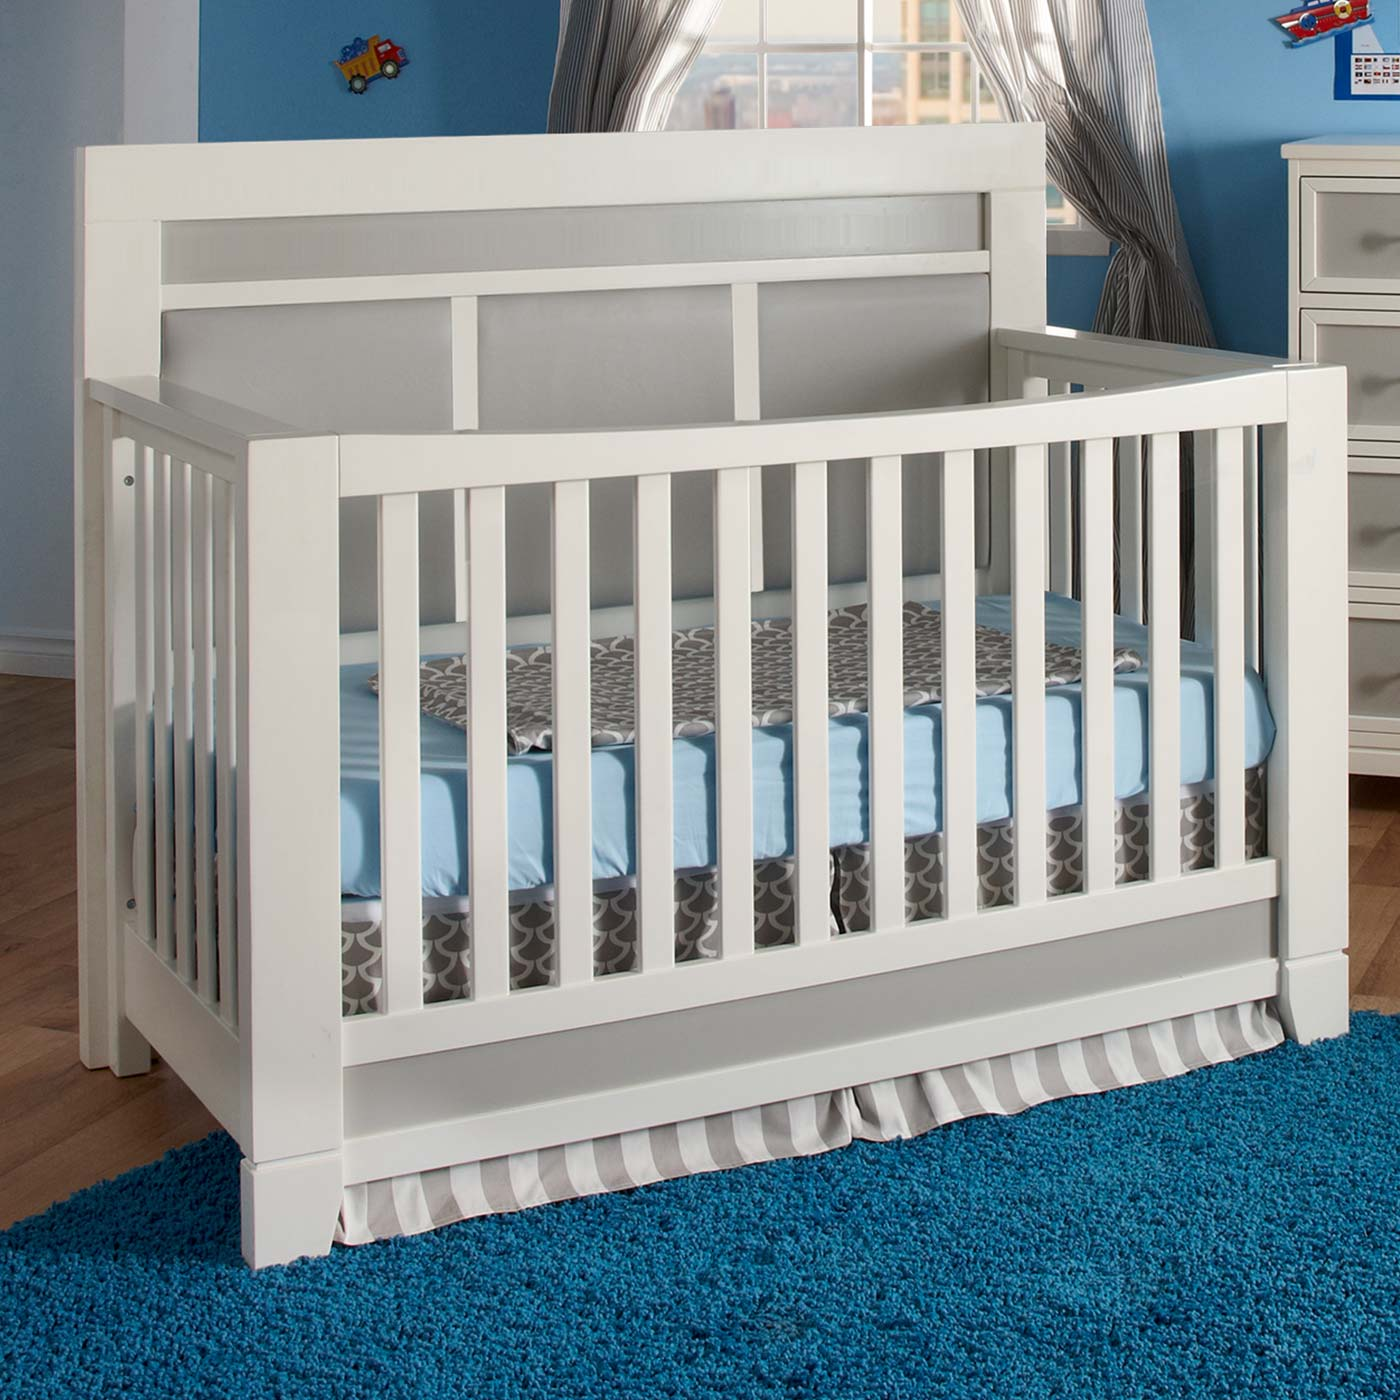 Pali crib for sale used - Pali Cortina Forever Crib In White And Grey